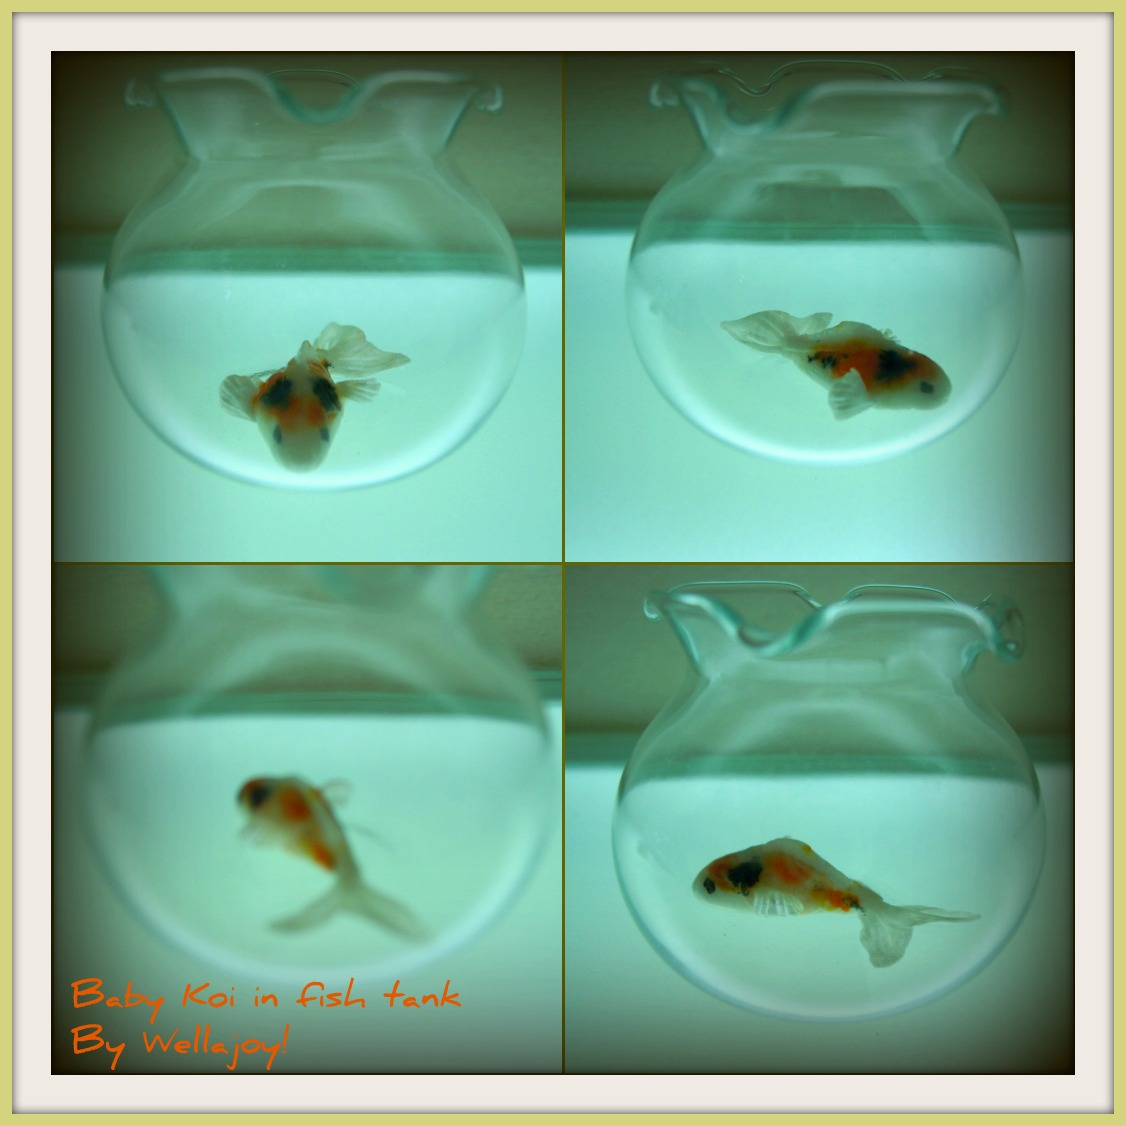 Wellajoy 39 s miniature koi fish with videos for Baby koi fish